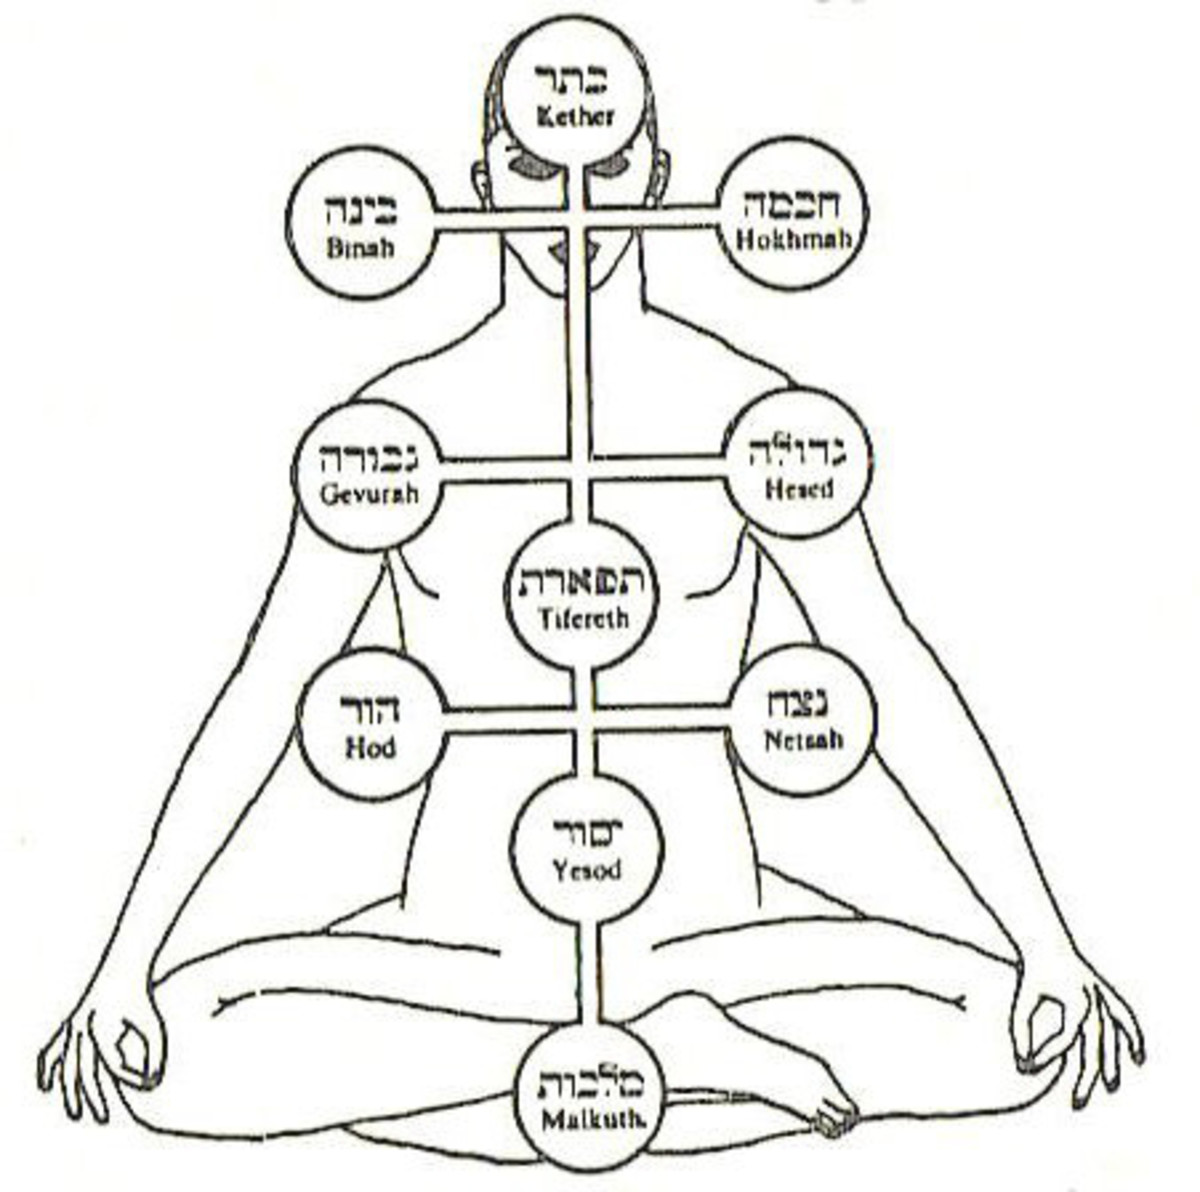 Using sacred geometry we see how it relates to our own human form, chakras and the Tree of Life.